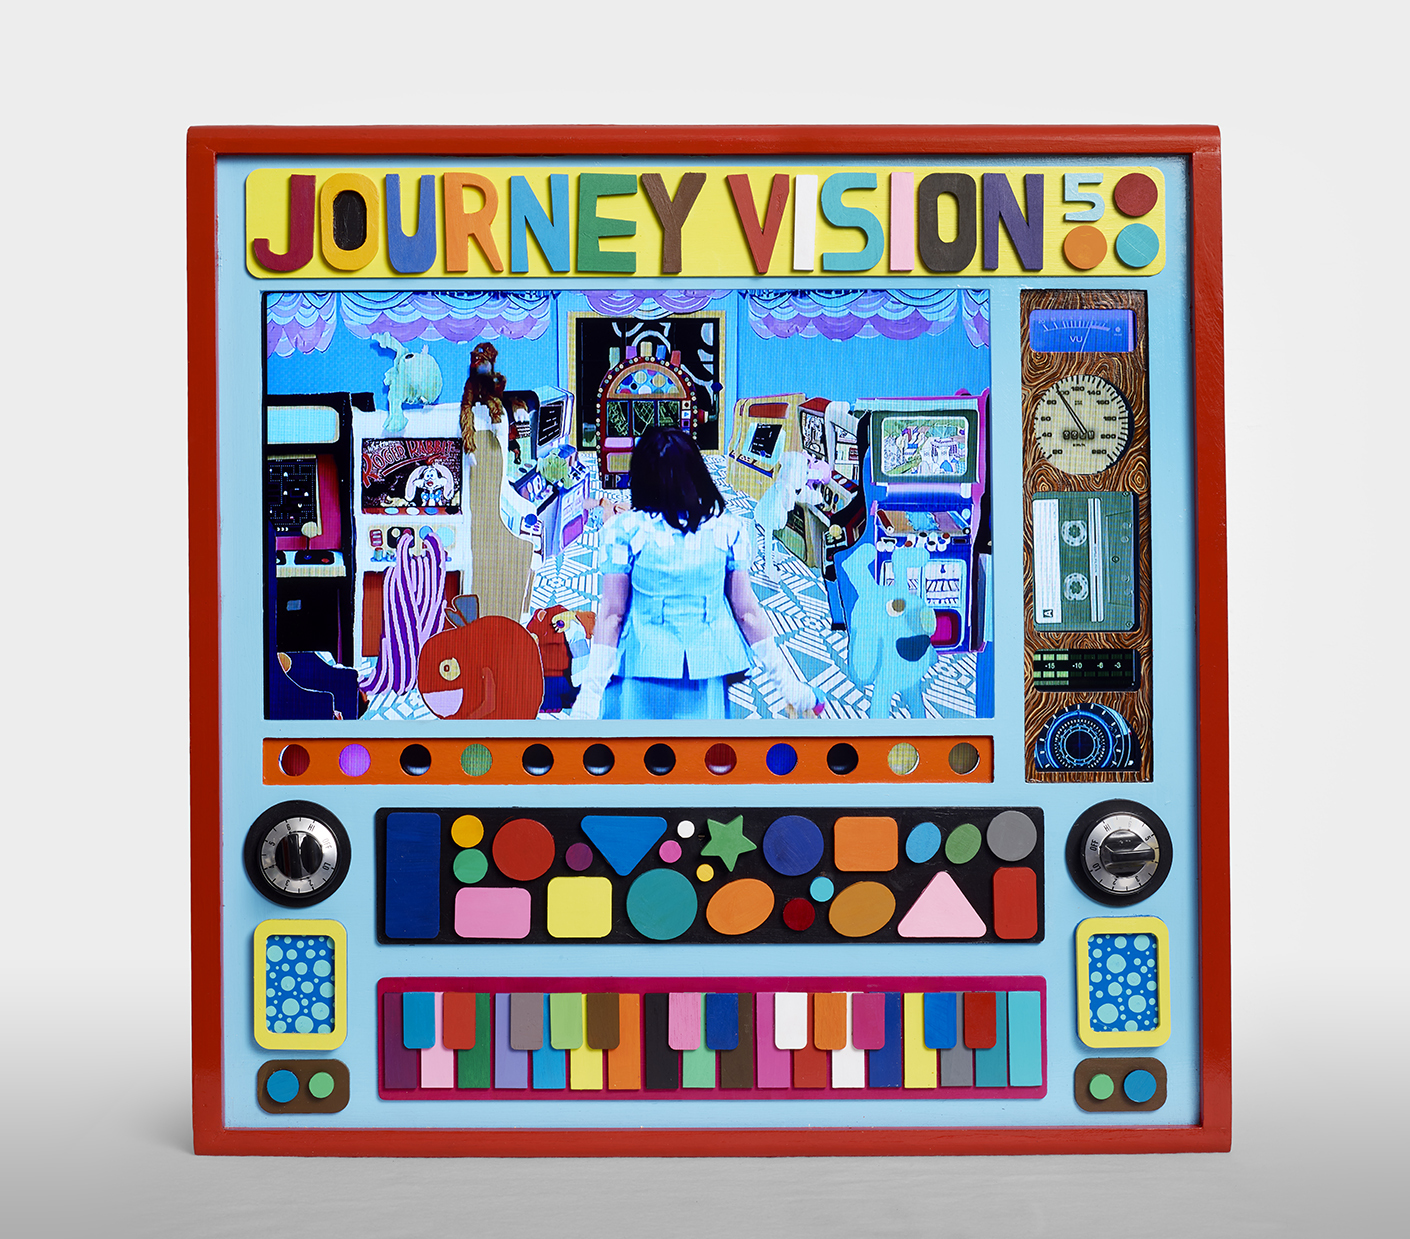 An artwork featuring a digital screen emulating a televsion set, decorated with dials and brightly color shapes reading JOURNEY VISION 5 across the top.